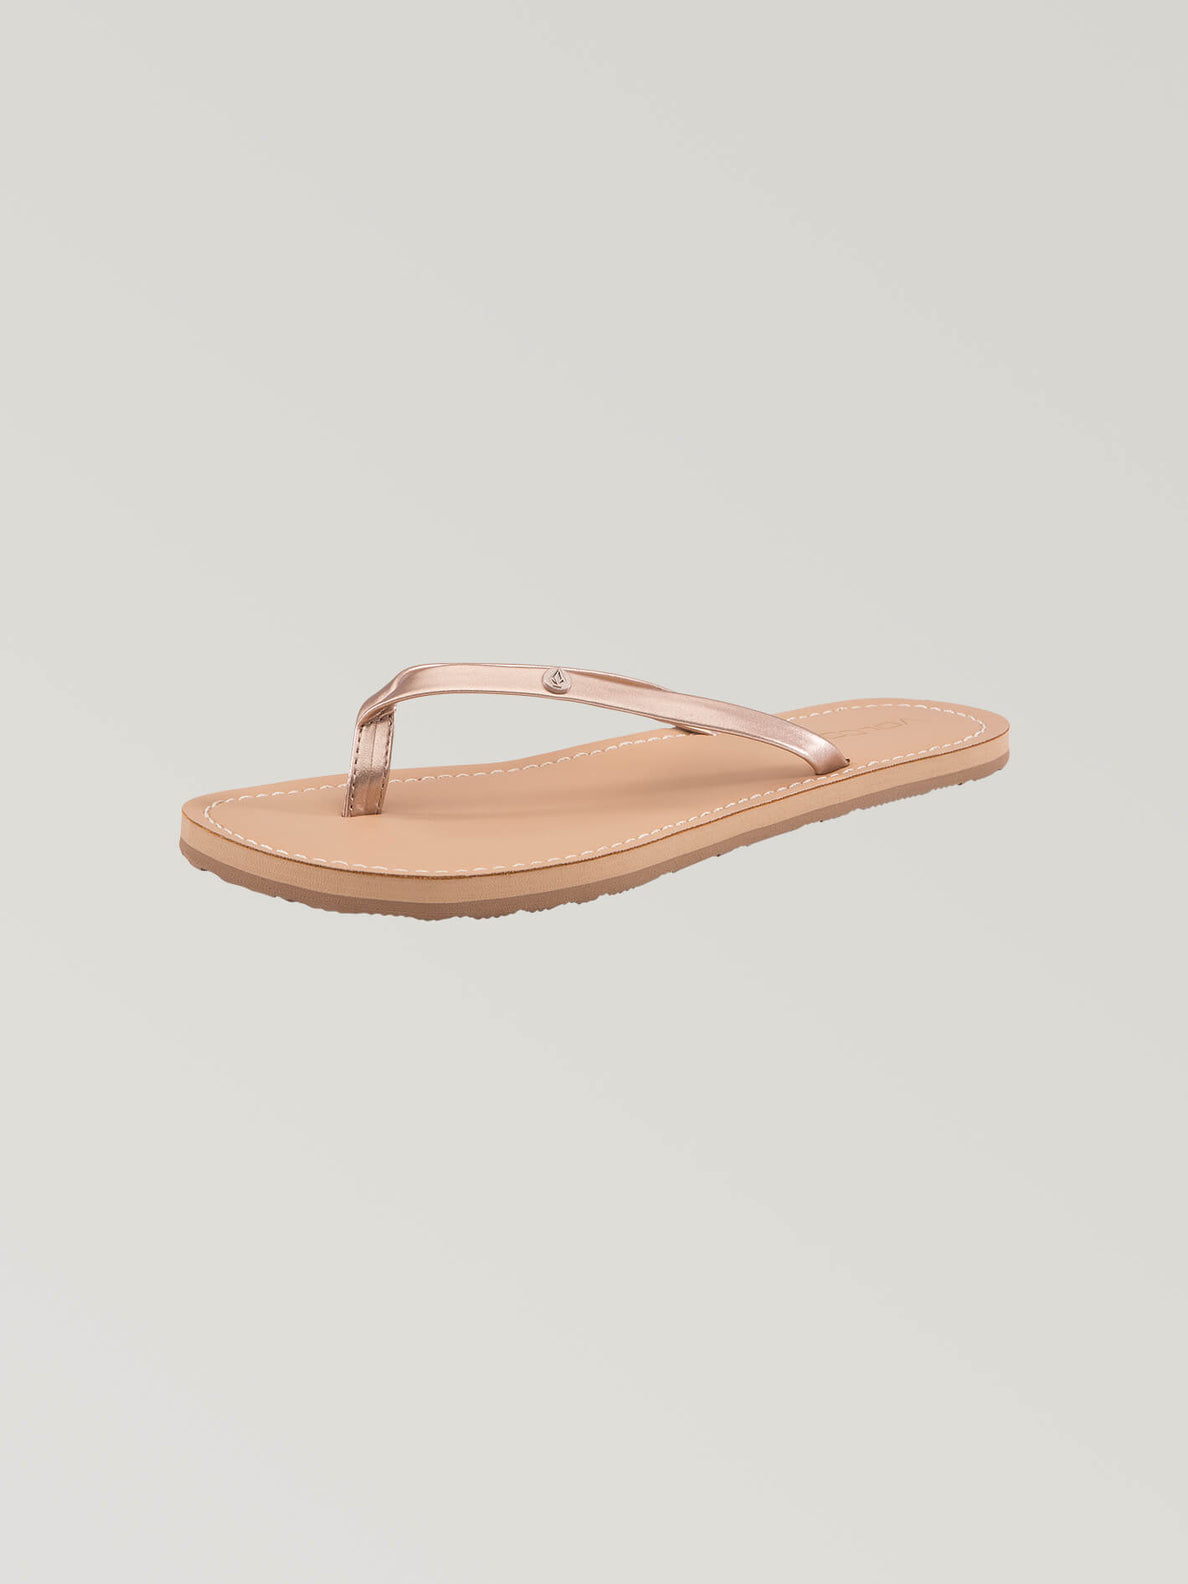 Lagos Sandals In Rose Gold, Back View